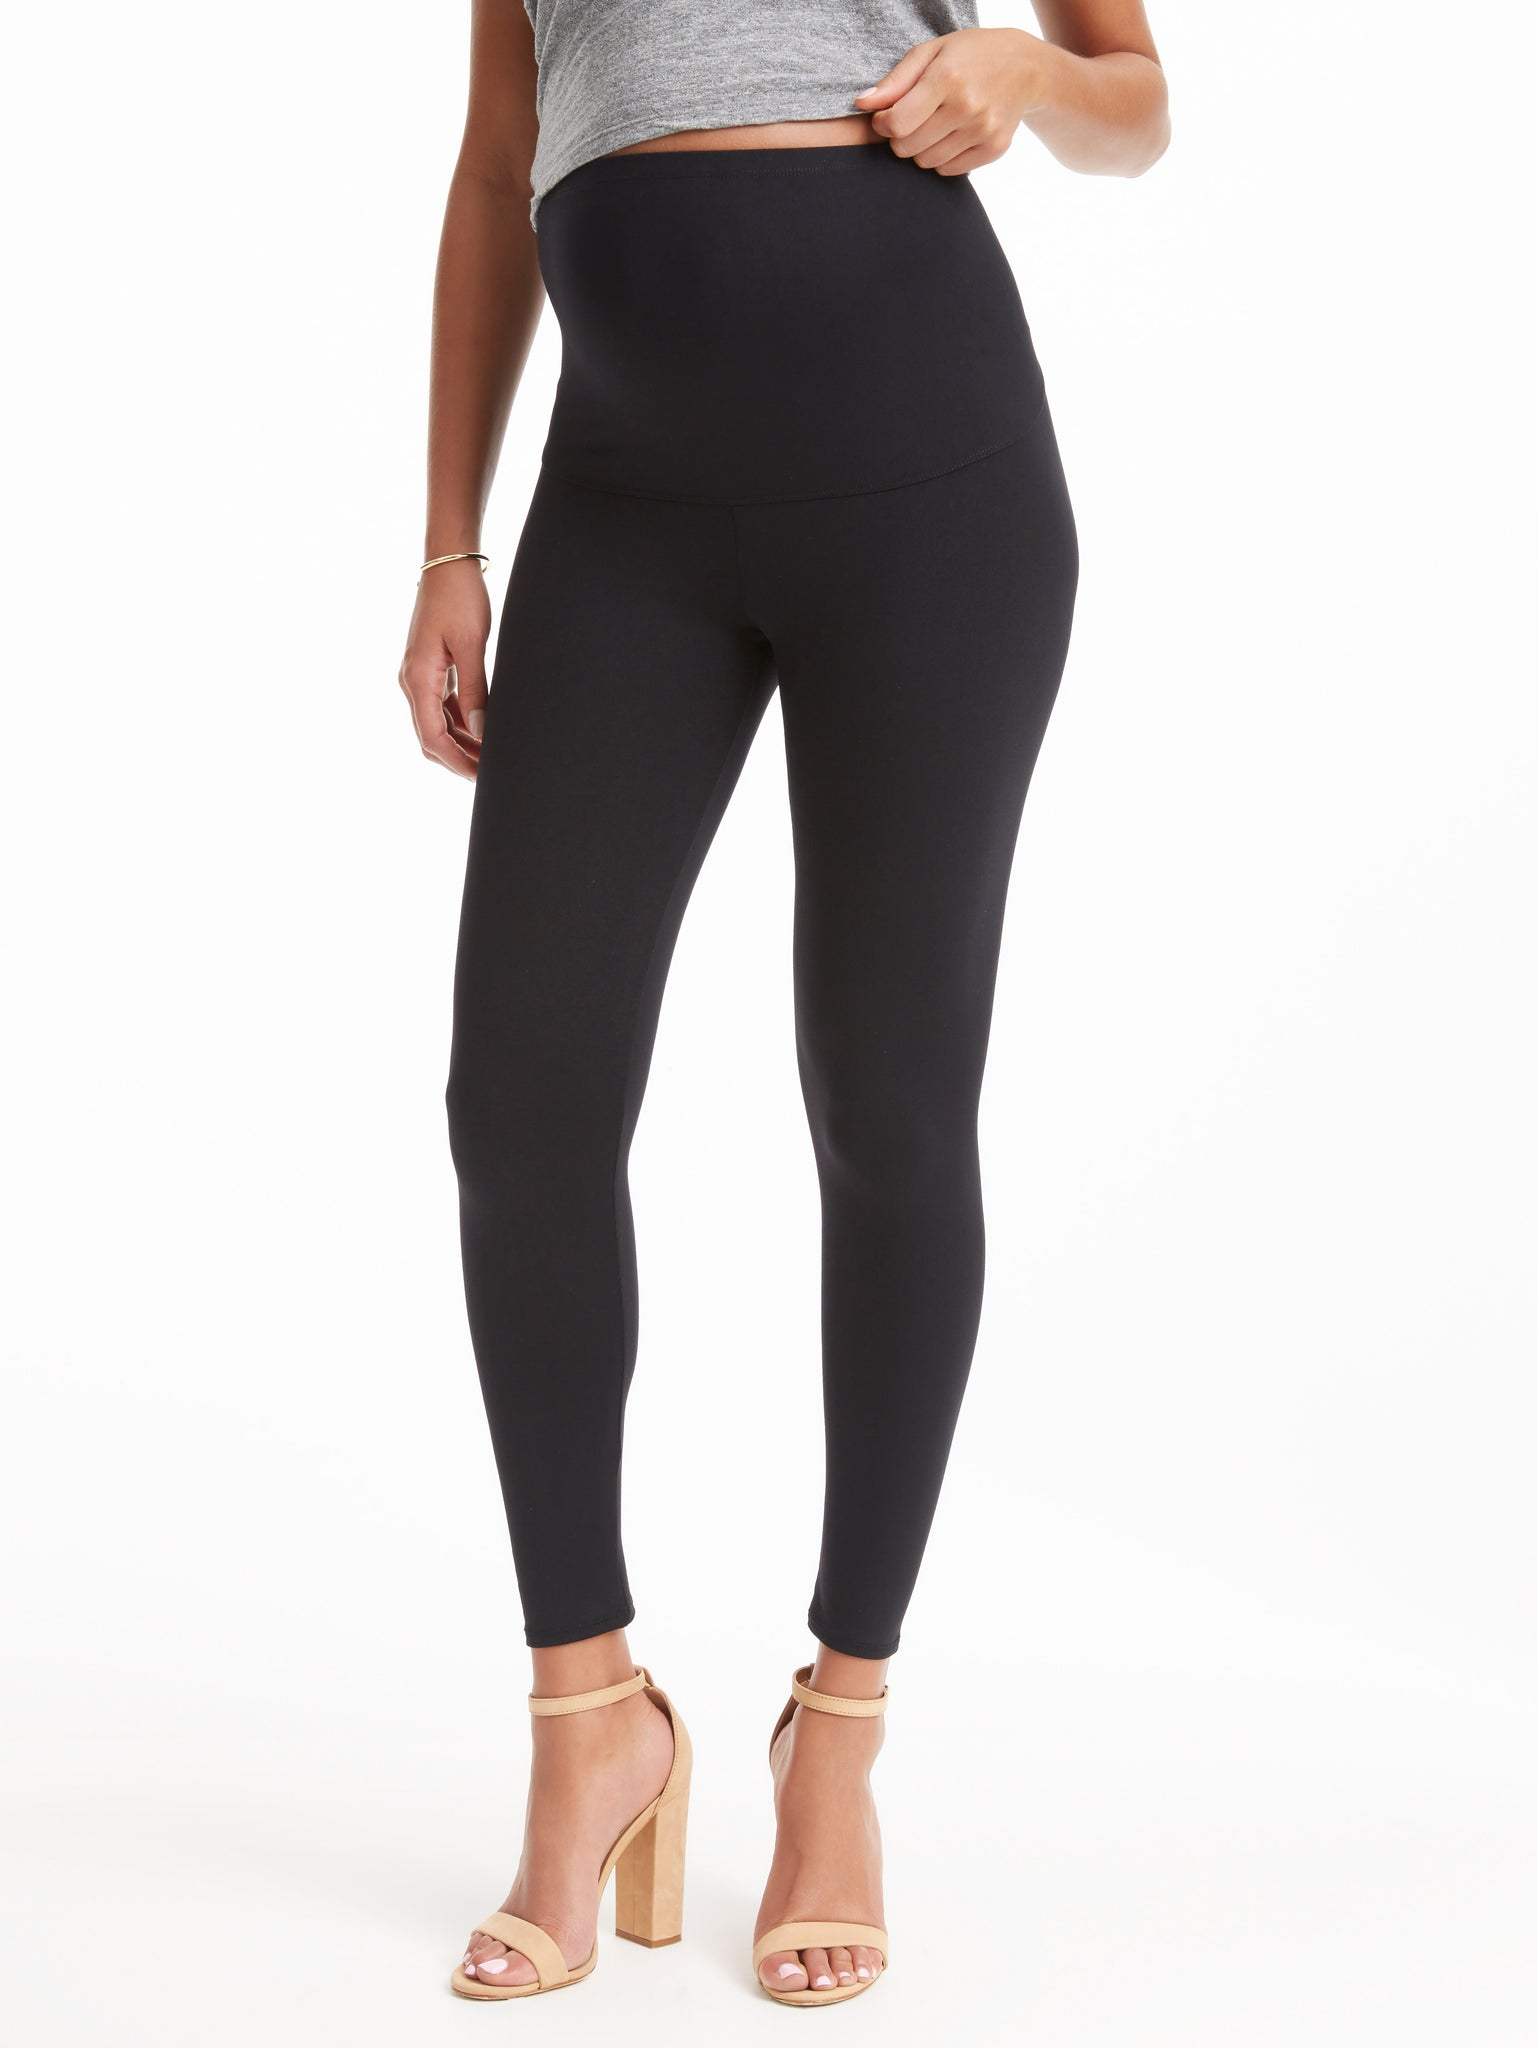 9b2f0746ebcad David Lerner Women's Maternity Full-Length Leggings - Black | TILDEN